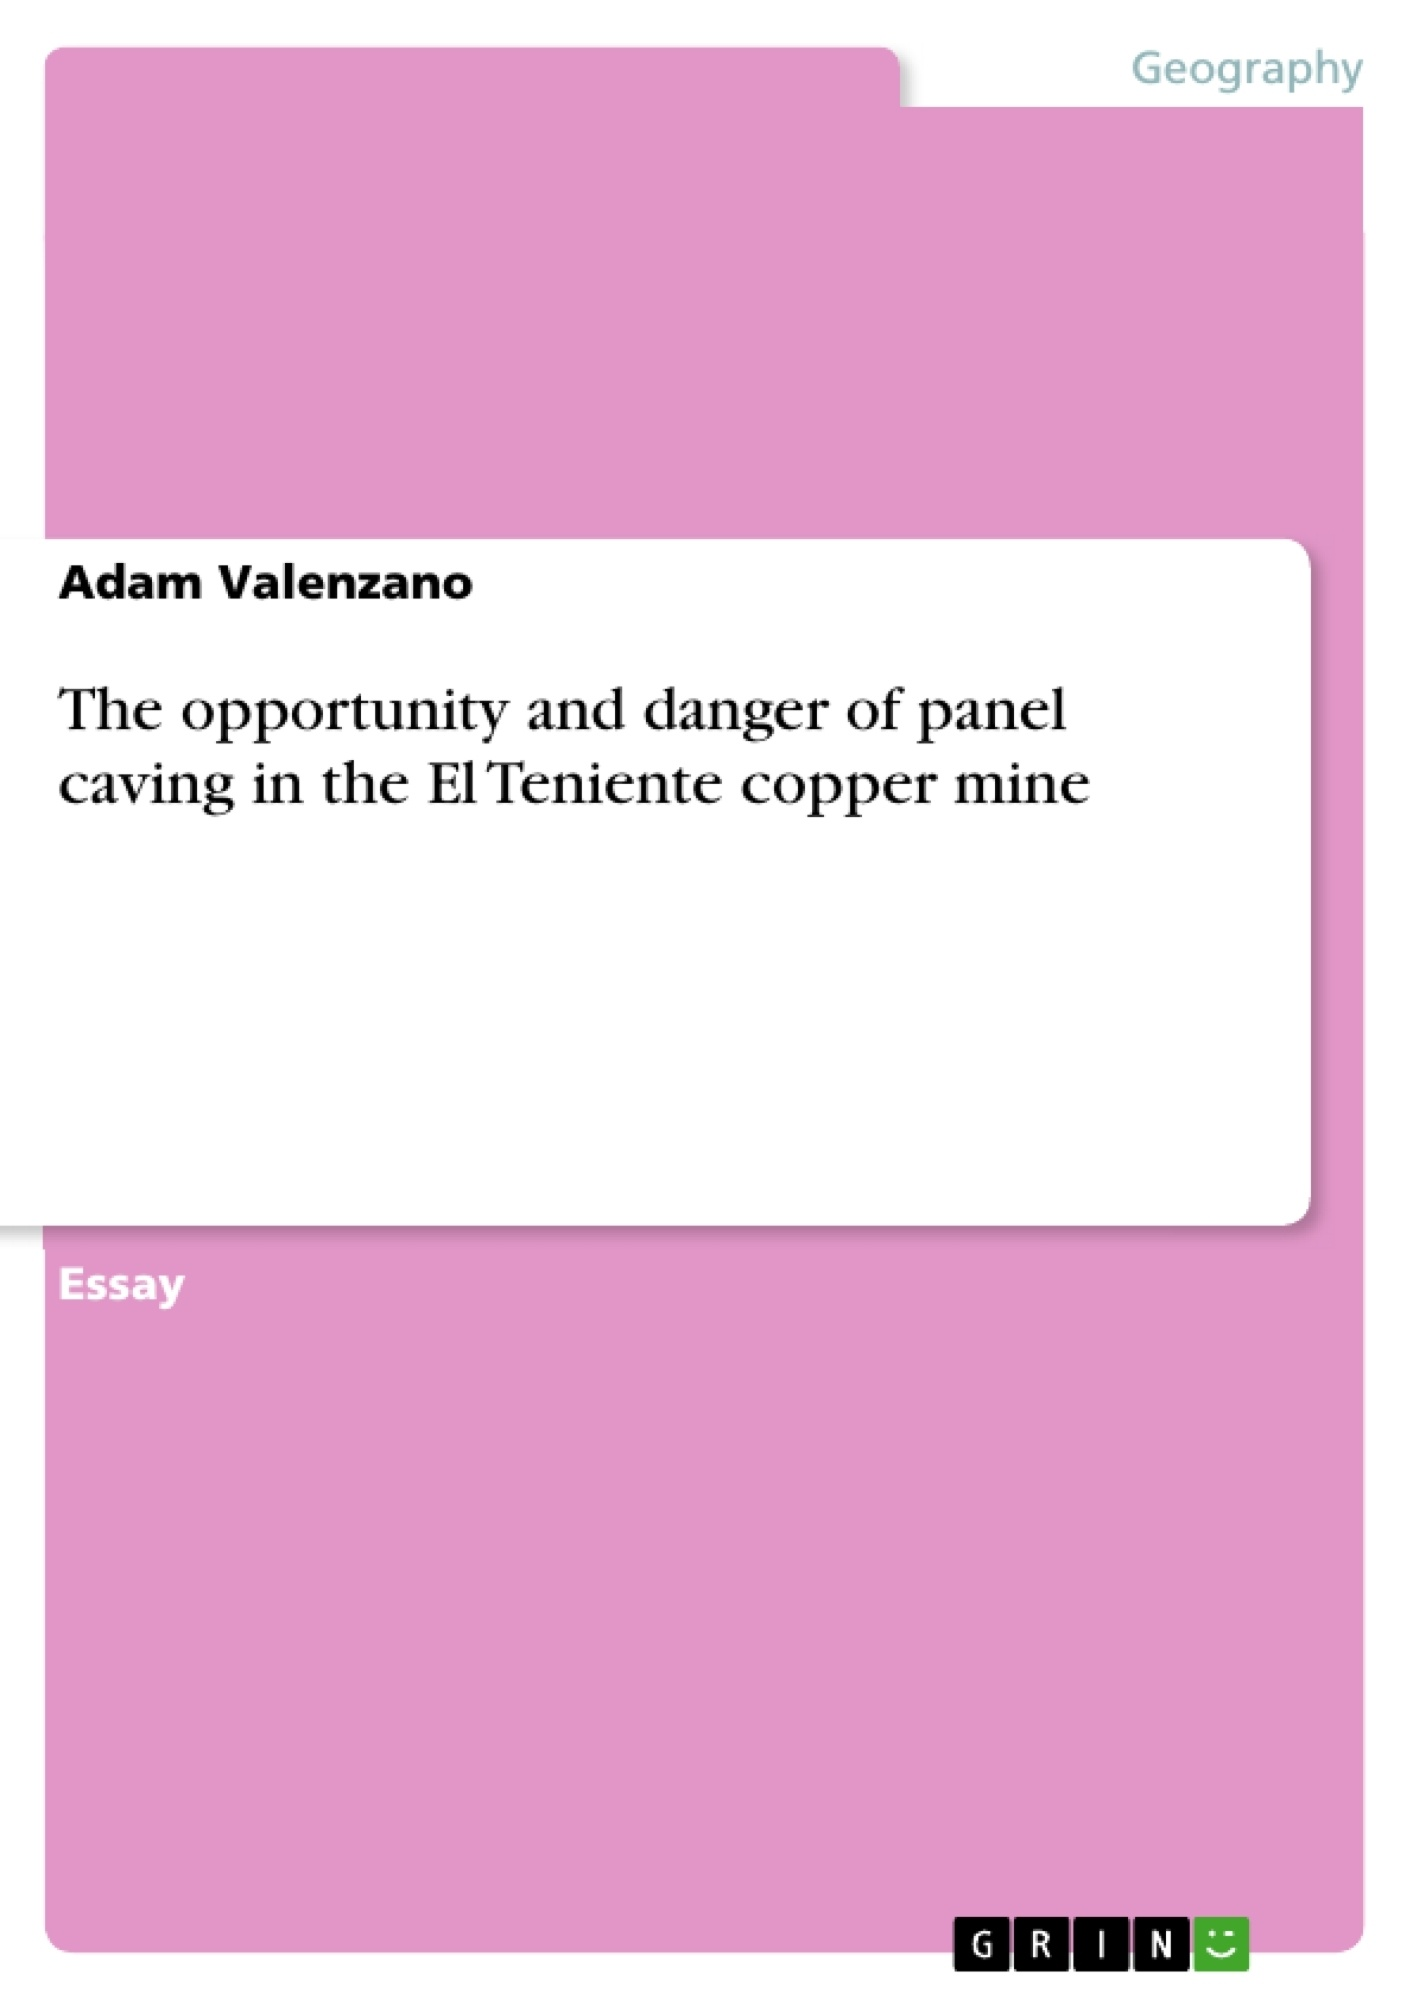 Title: The opportunity and danger of panel caving in the El Teniente copper mine